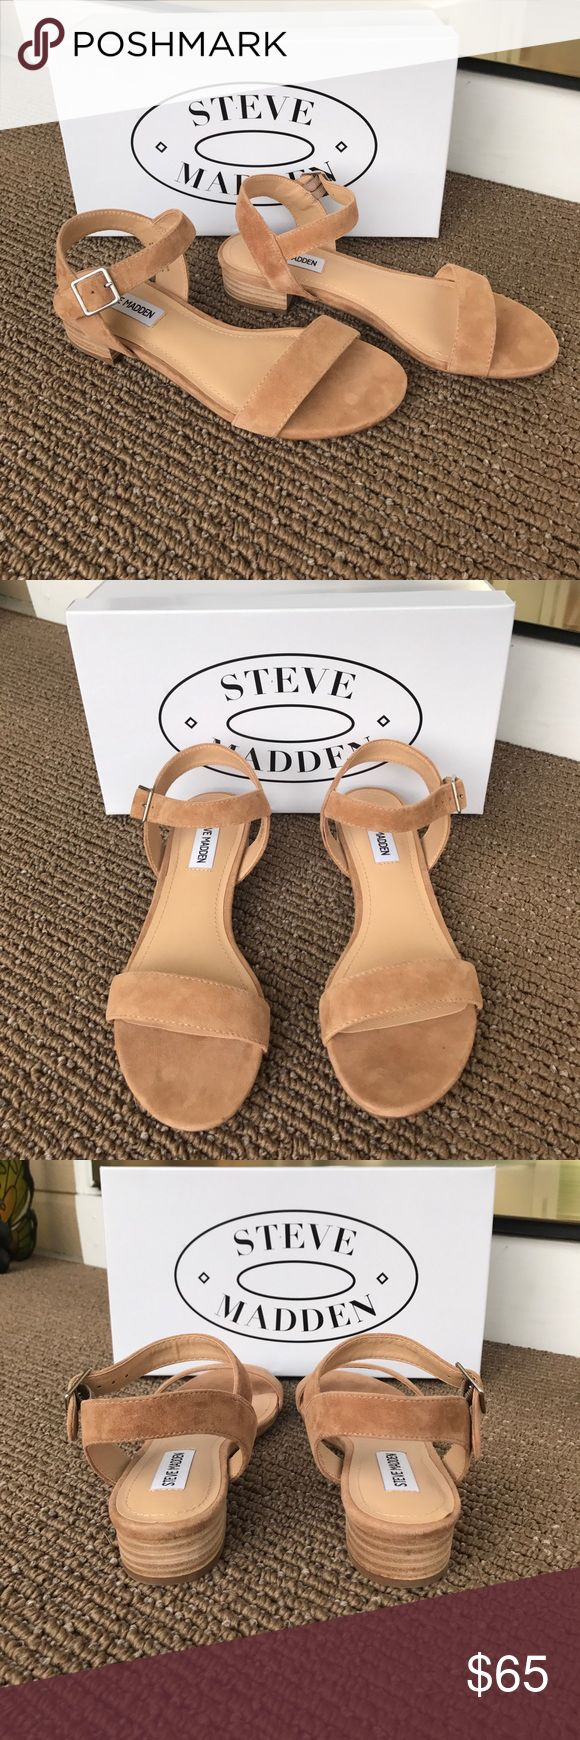 Steve Madden Cache Camel Suede Sandals NIB - These Sandals are Trendy and Very Comfortable - All Suede & Very Soft - I ordered these from Steve Madden - I ❤️ them but are unfortunately a little too big (I need a 6) and I waited to long to return them. They have never been worn outside - Has a Low Stacked Heel - Man made Lining & Sole - Has a Silver Buckle with Adjustable Strap - Price Firm unless Bundled for a Discount! Steve Madden Shoes Sandals